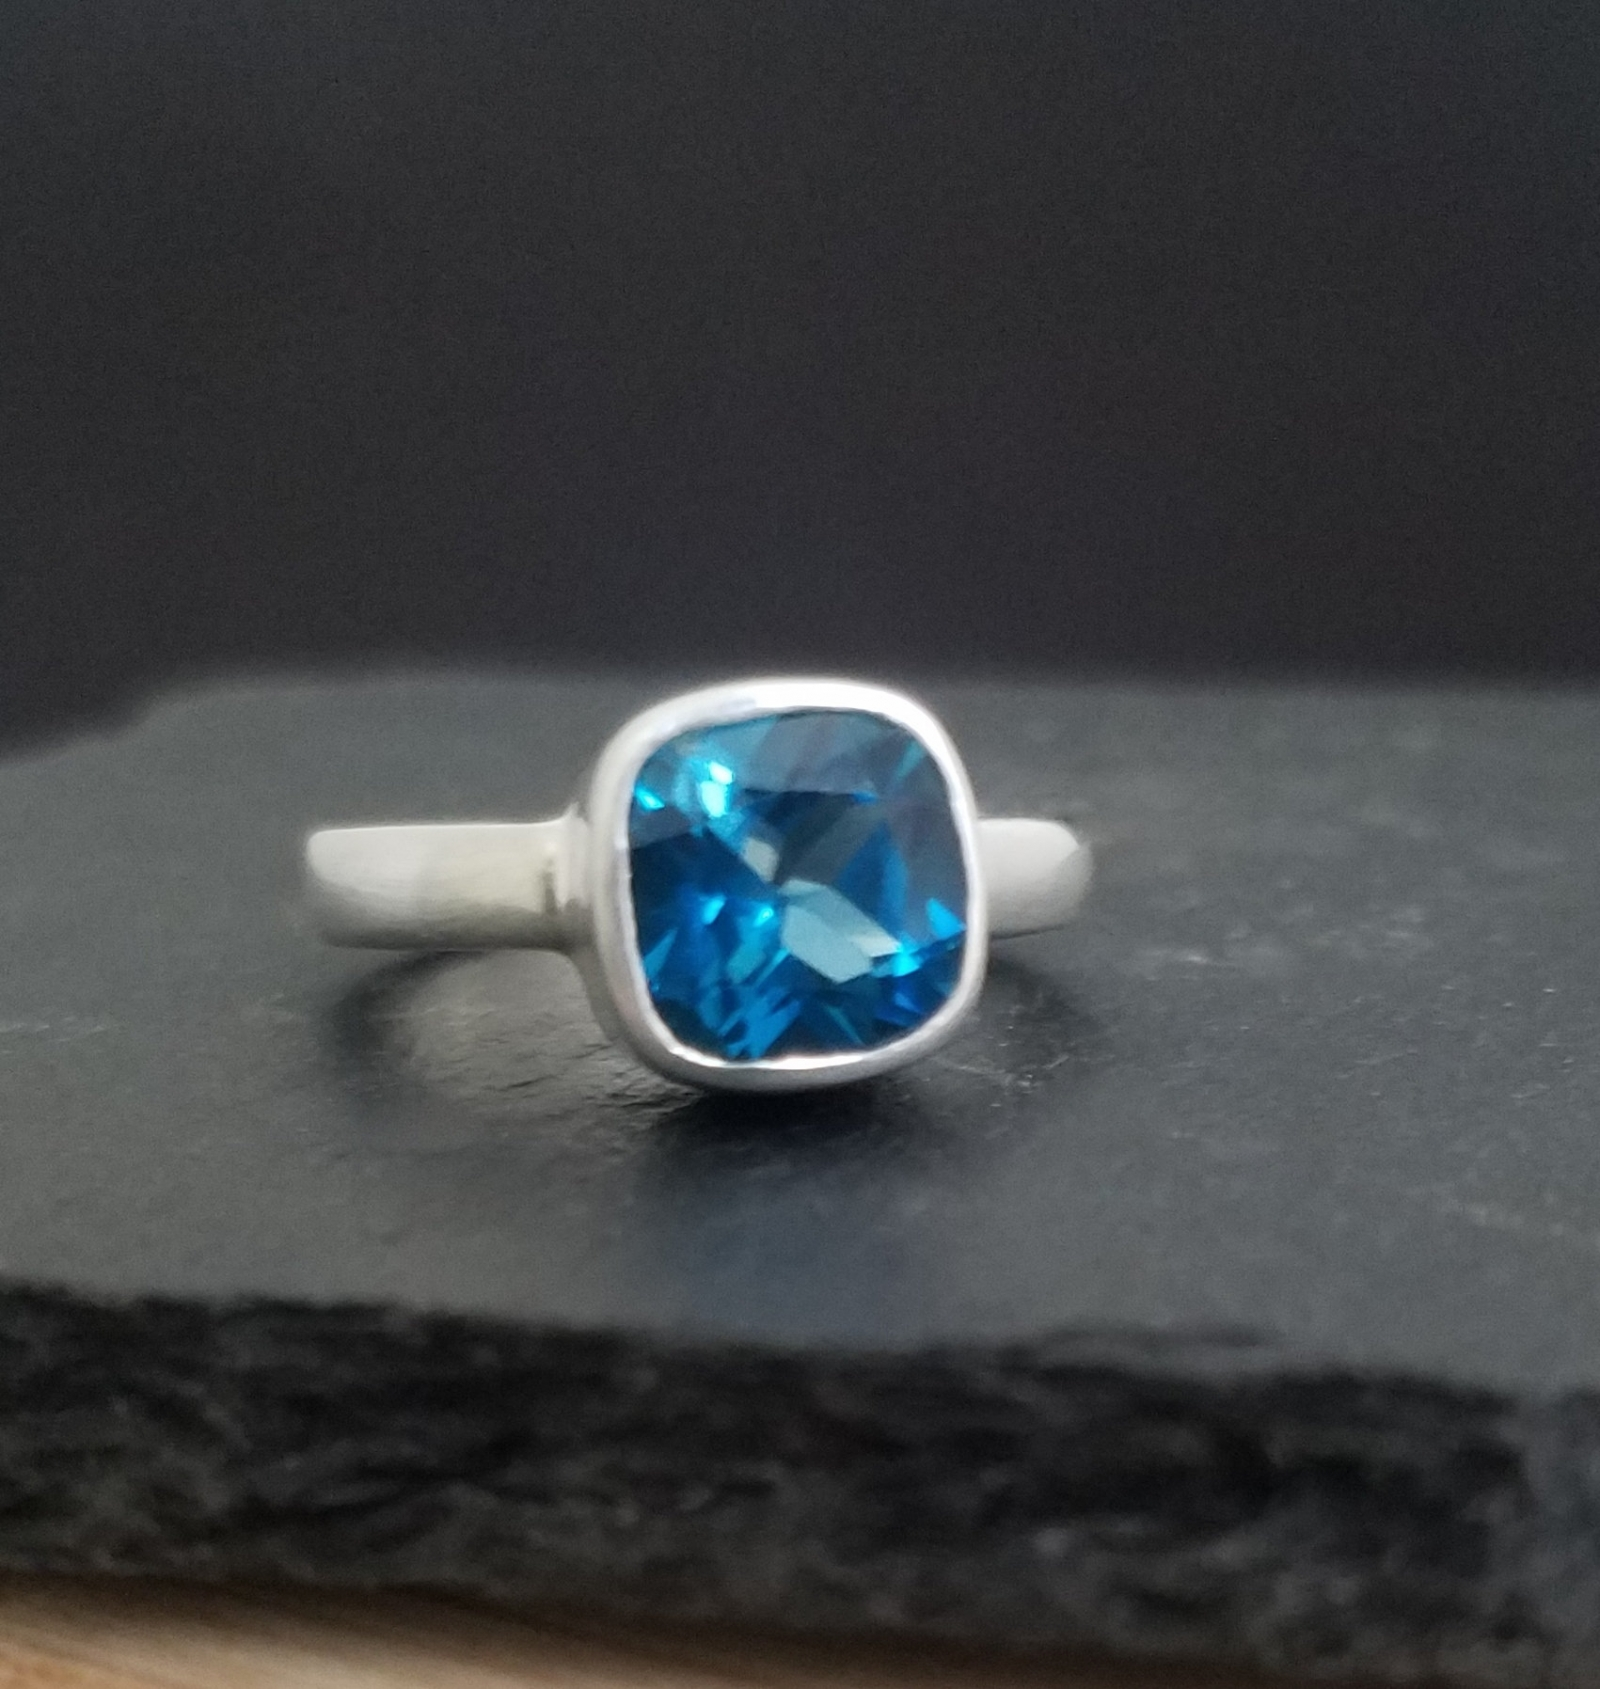 Cushion Cut London Blue Topaz Ring Sterling Silver Ring Blue Topaz Solitaire Cocktail Ring Ready To Ship Size 7